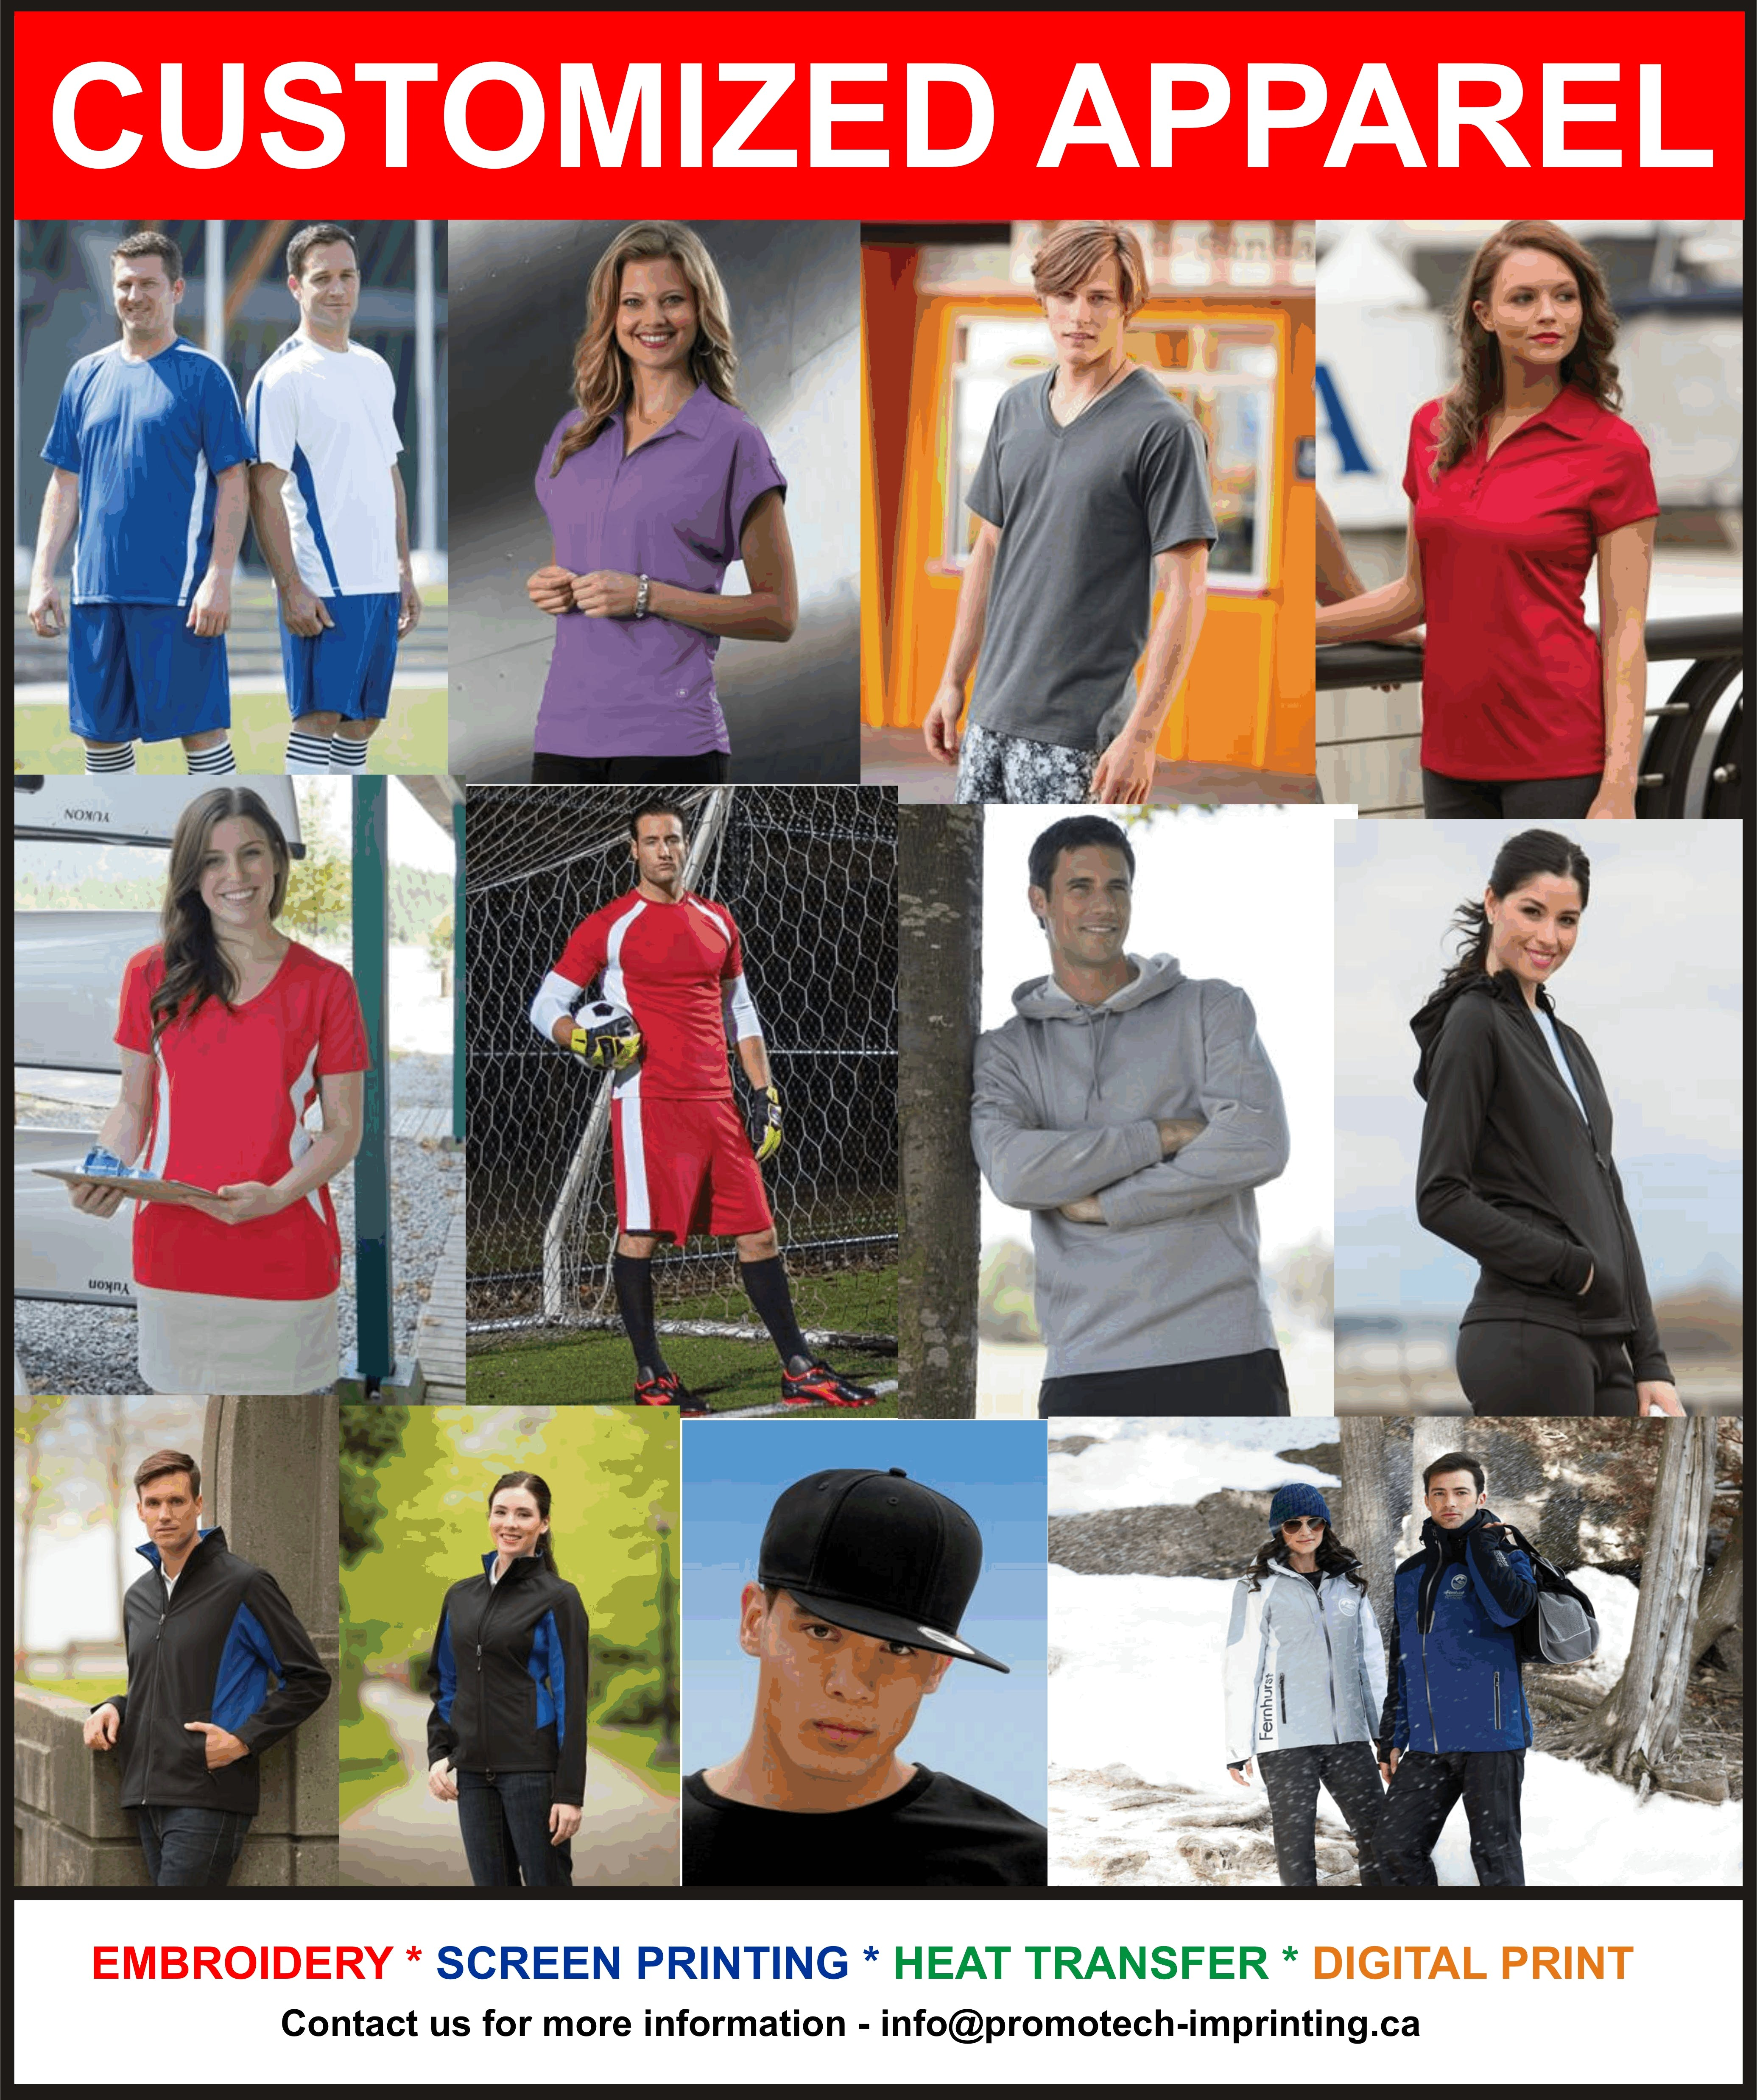 CUSTOMIZED APPAREL - CUSTOMIZED APPAREL - sold by PromoTech Custom Imprinting